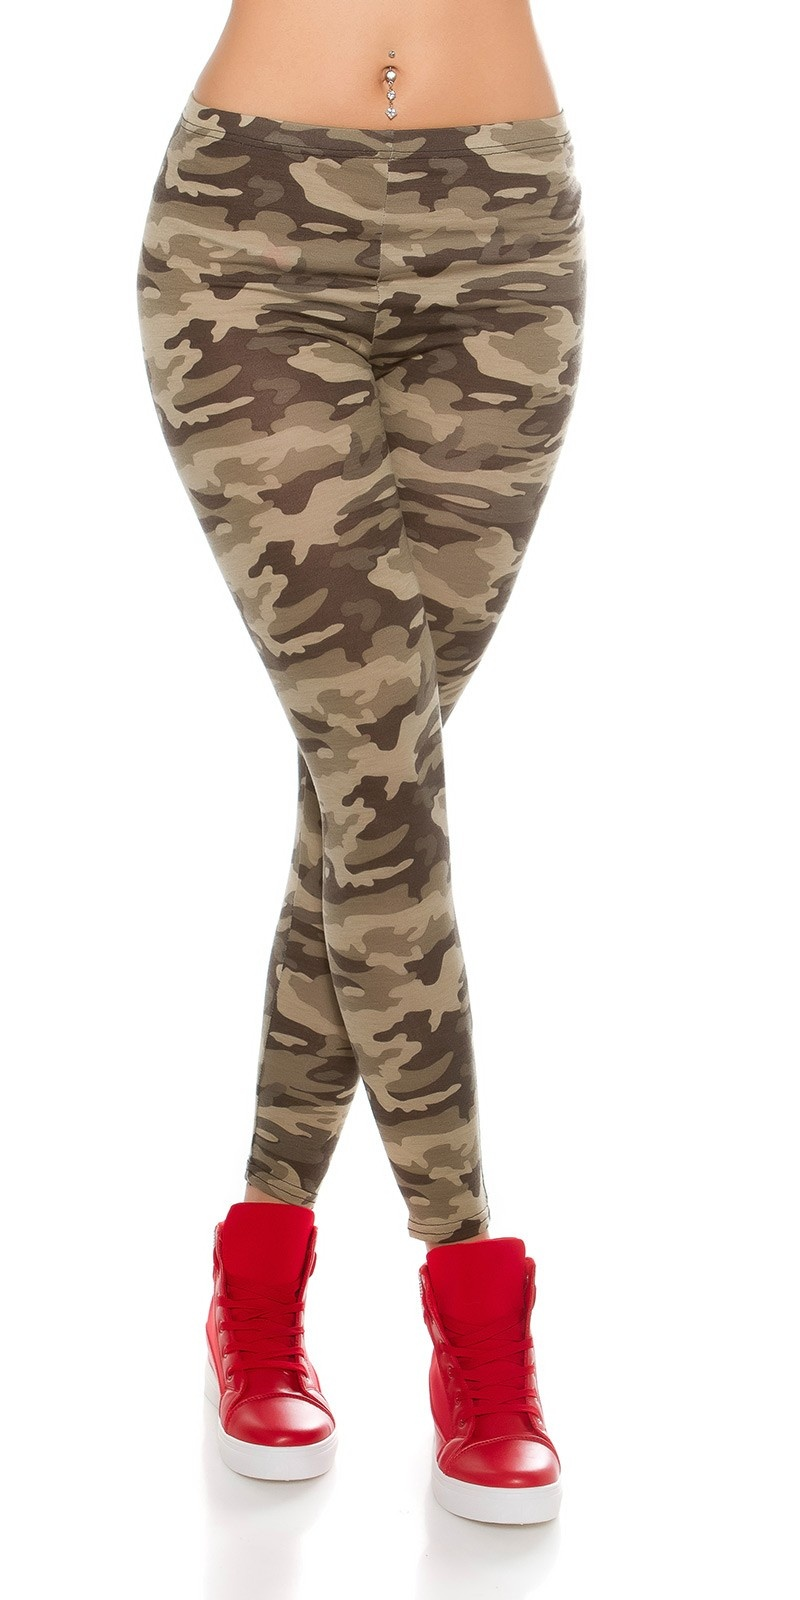 Trendy Camouflage look leggins Army